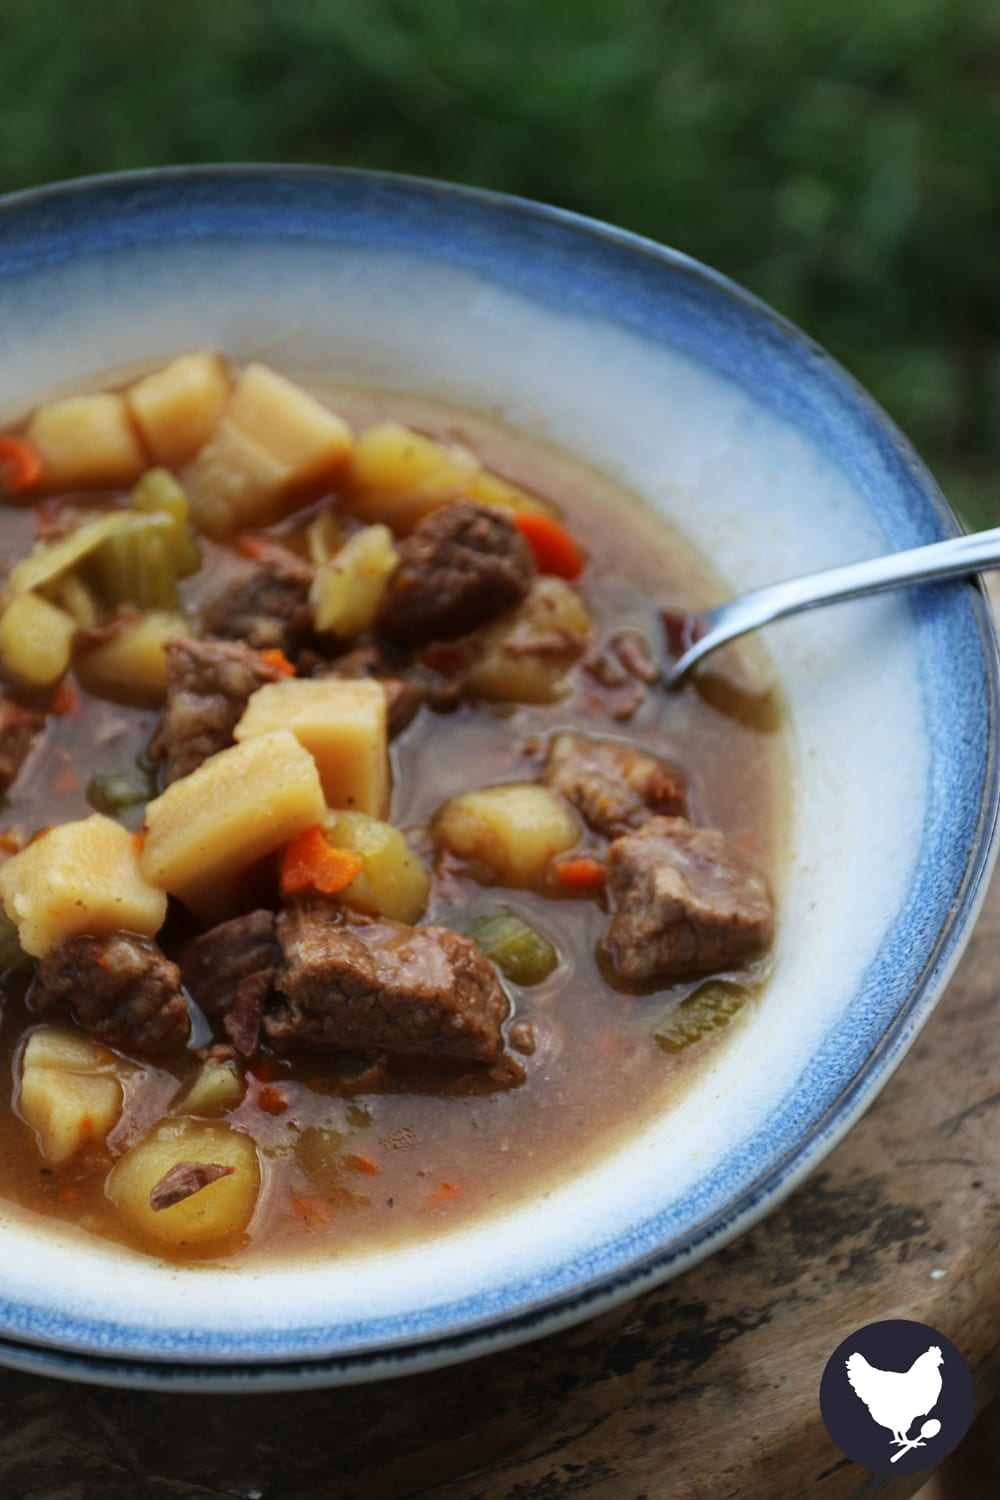 How to Make Hearty Beef Stew in the Instant Pot - Cooler weather brings a hunger for hearty meals, and this Beef Stew is just what you've been looking for. Get the recipe from Cosmopolitan Cornbread